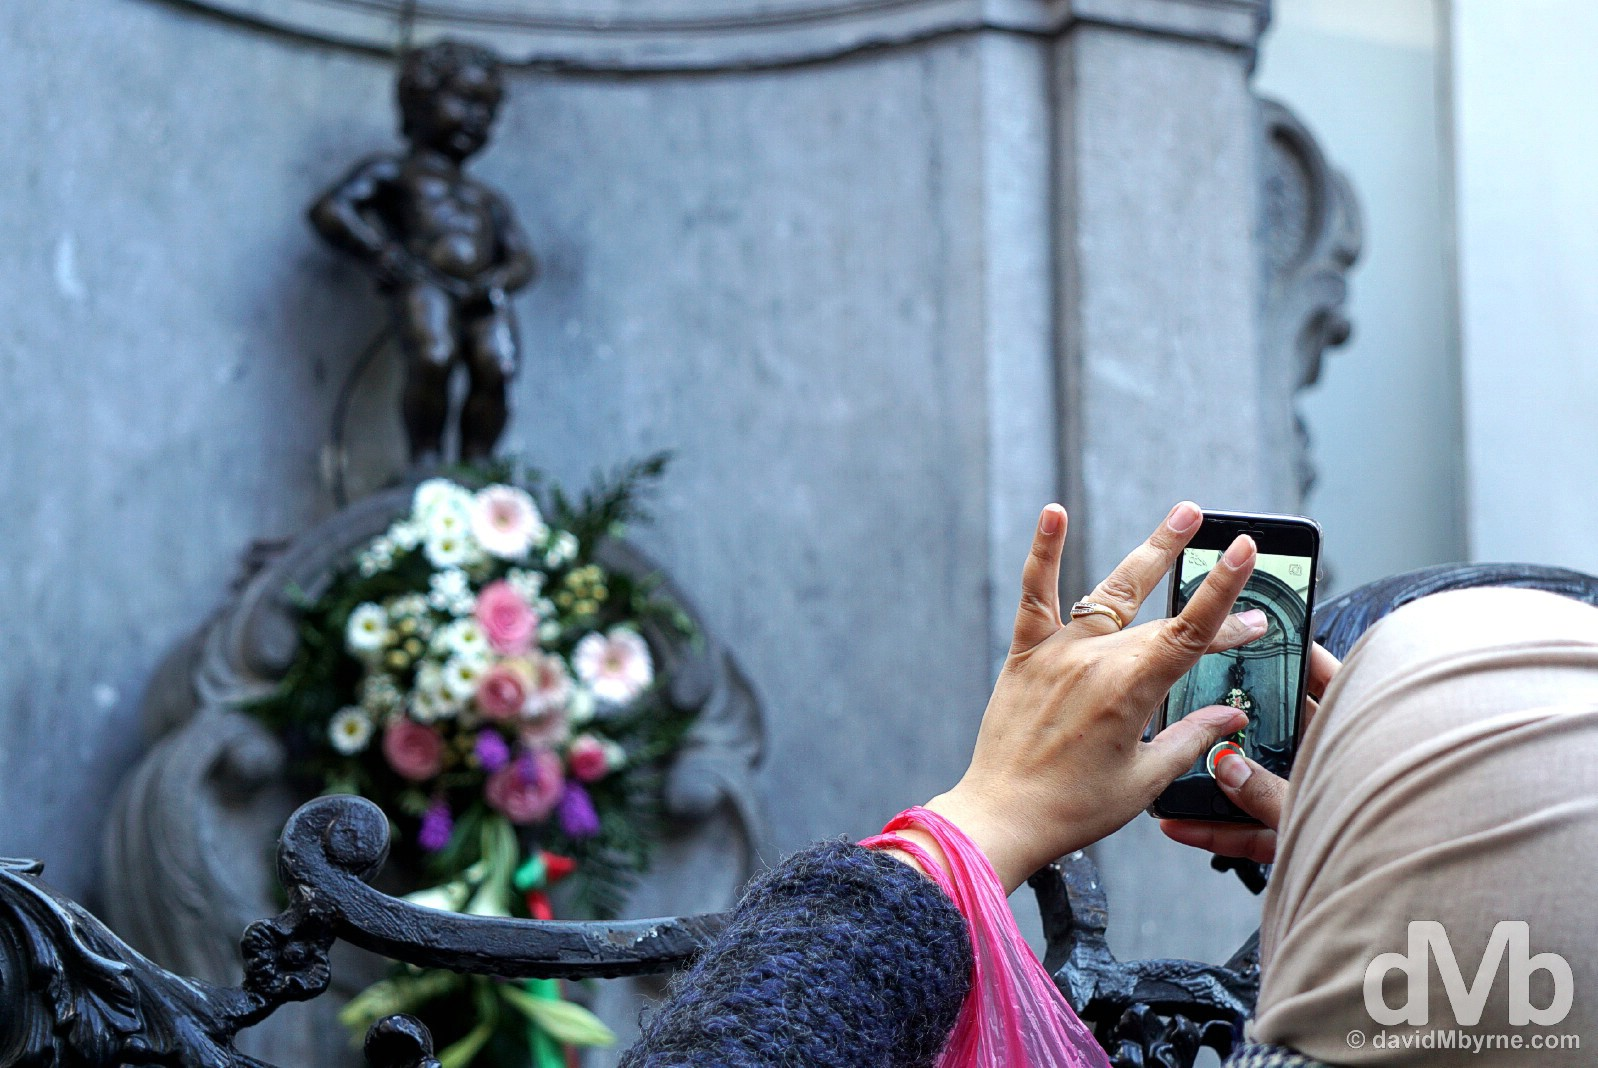 Capturing the tiny Manneken Pis statue, a national symbol of Belgium. Brussels, Belgium. January 14, 2016